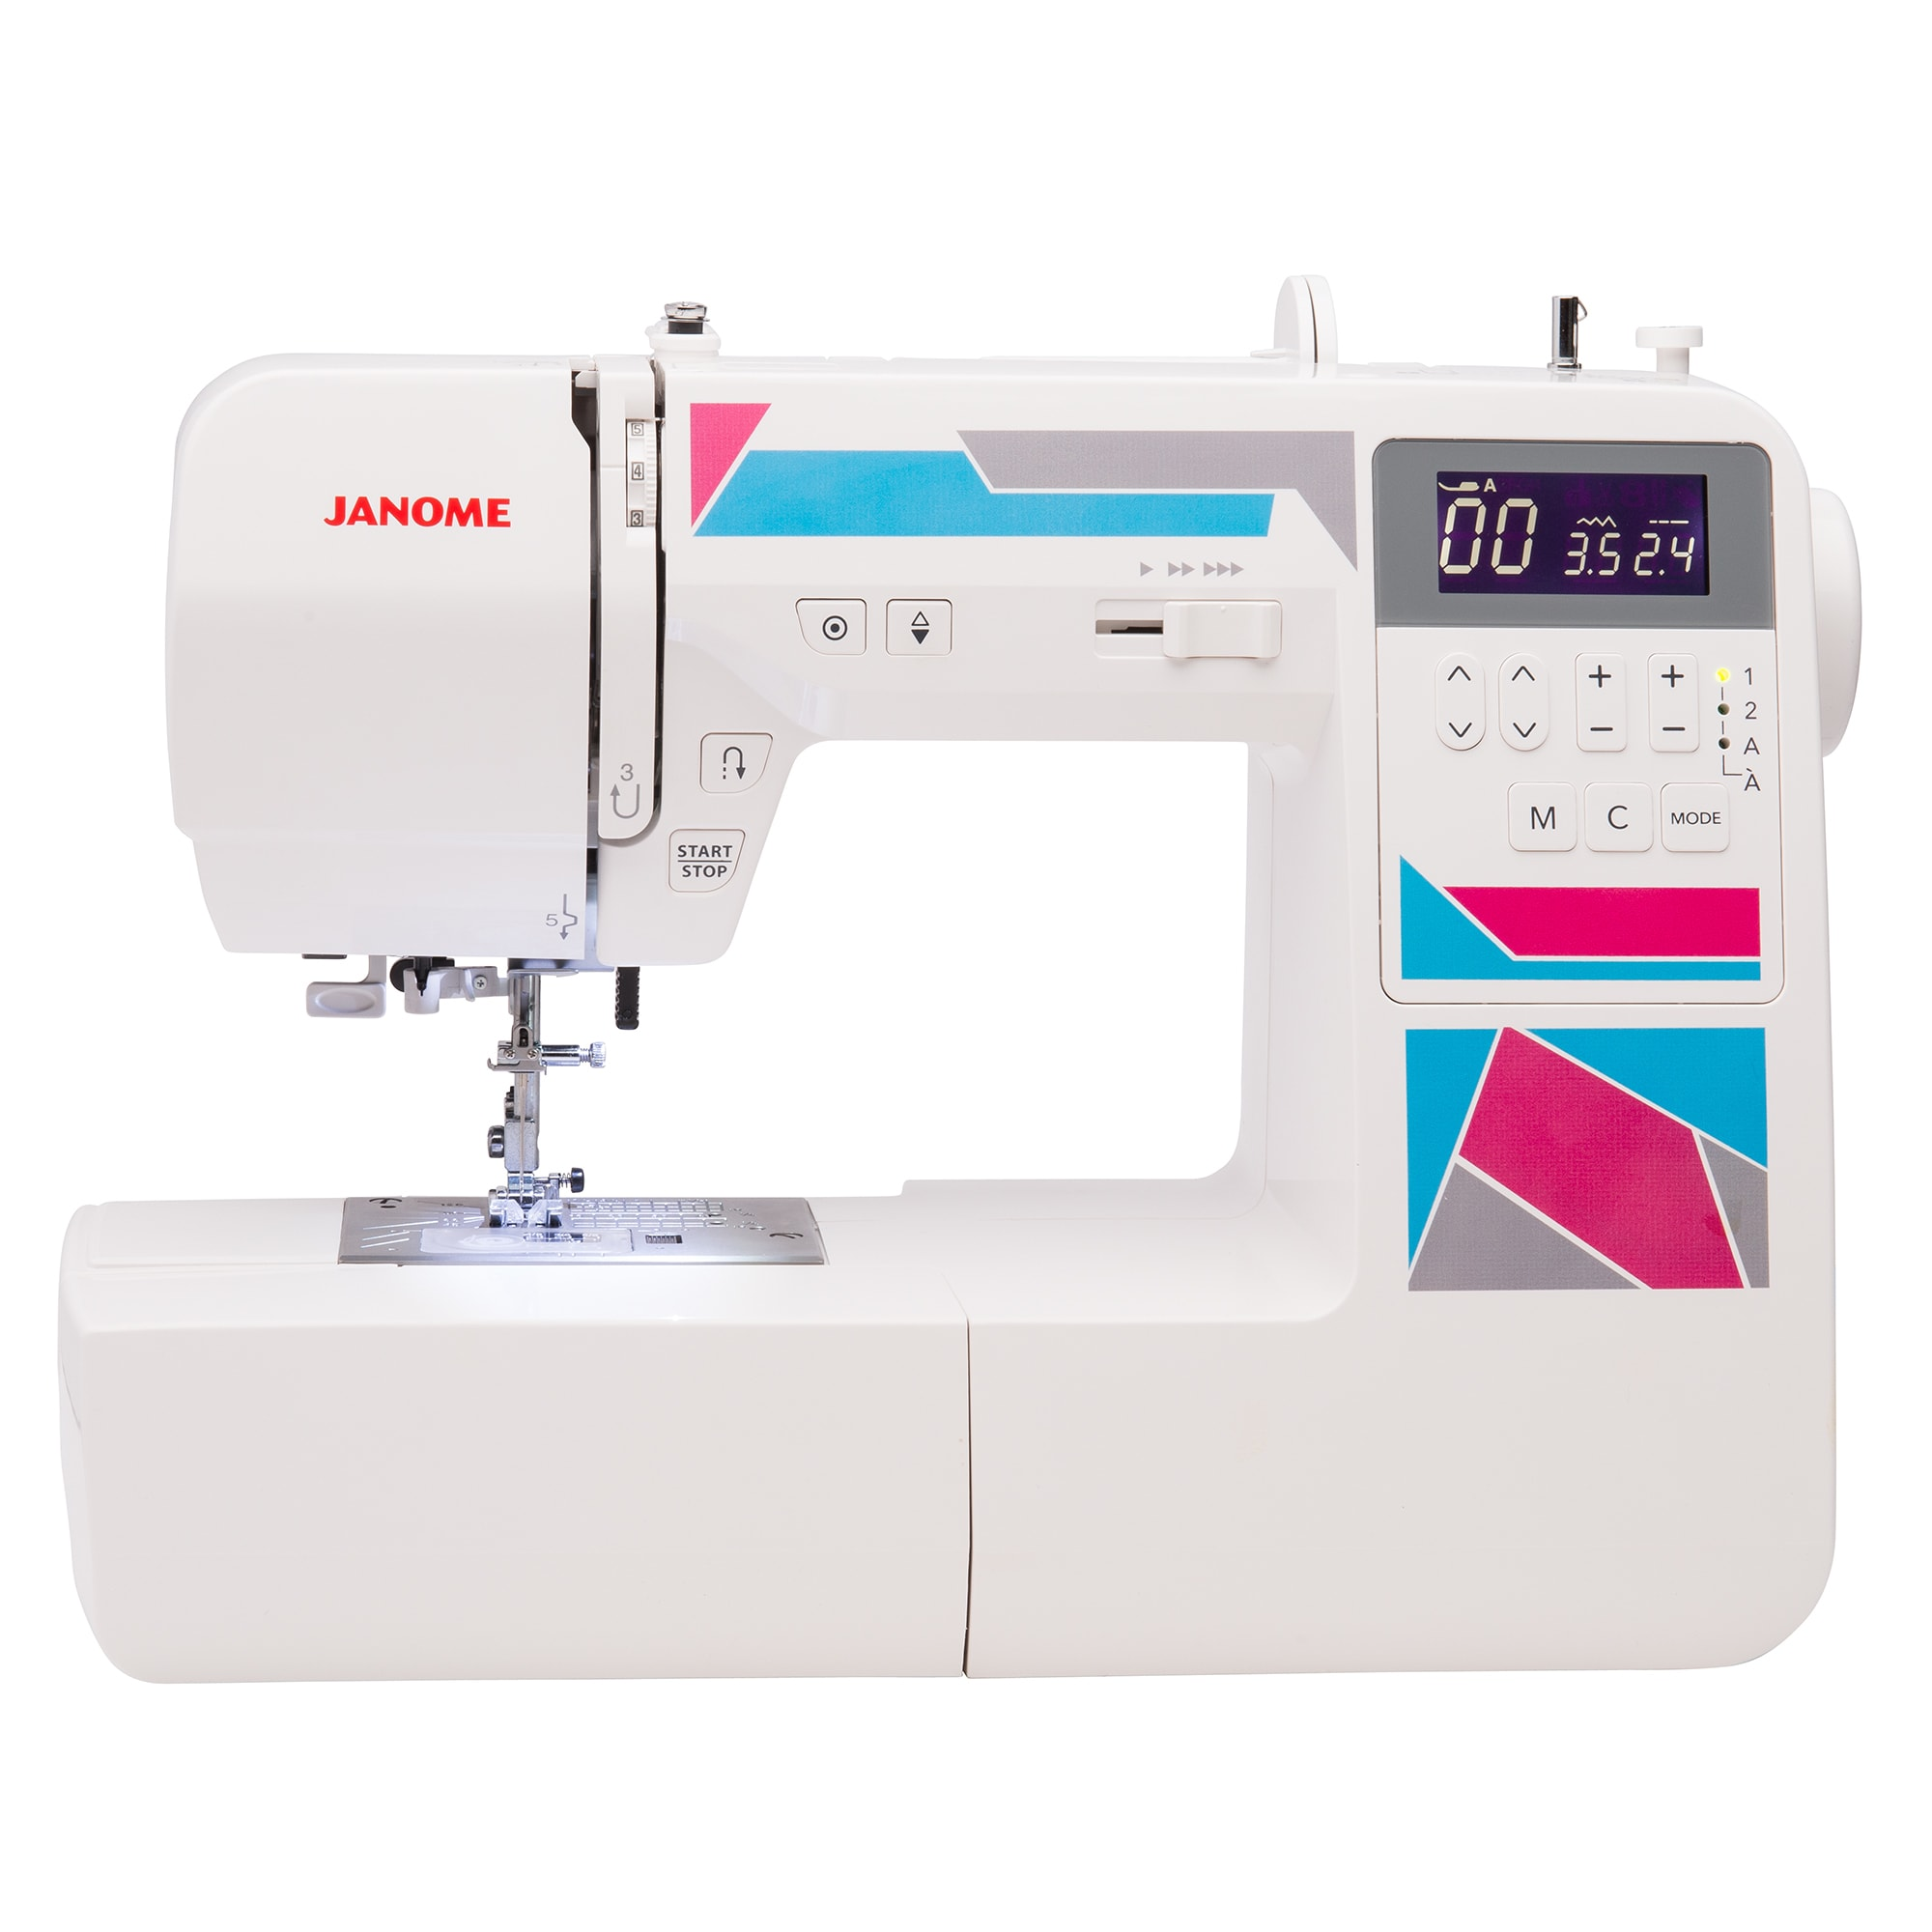 machine sewing a blog horizon article janome win memory quilting craft hero quilt community